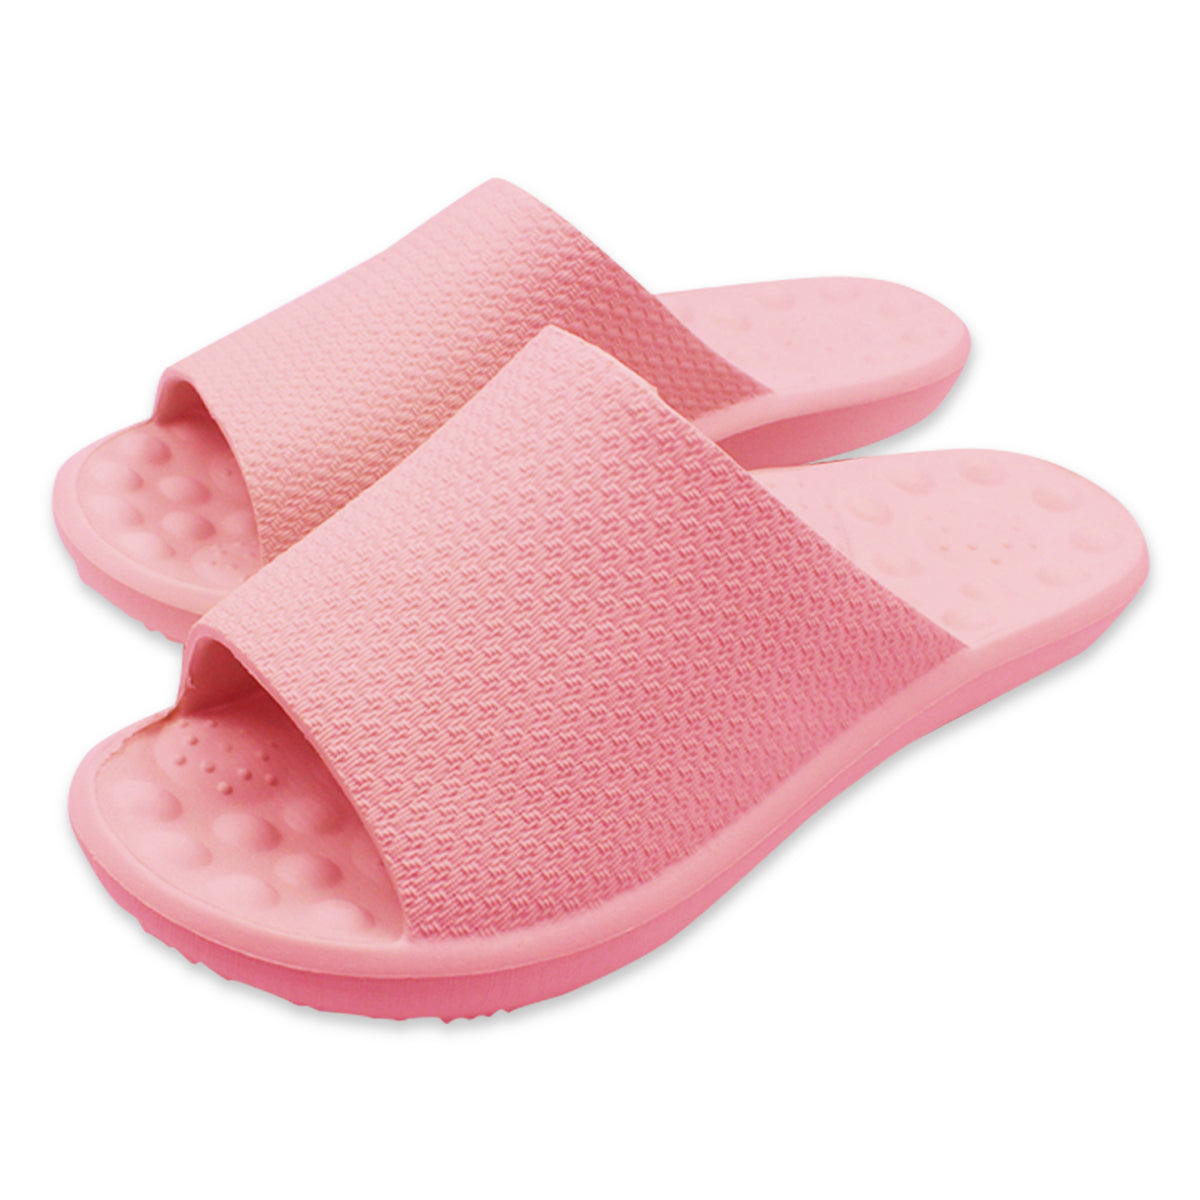 Women's Cushion Slip On Slide Sandals